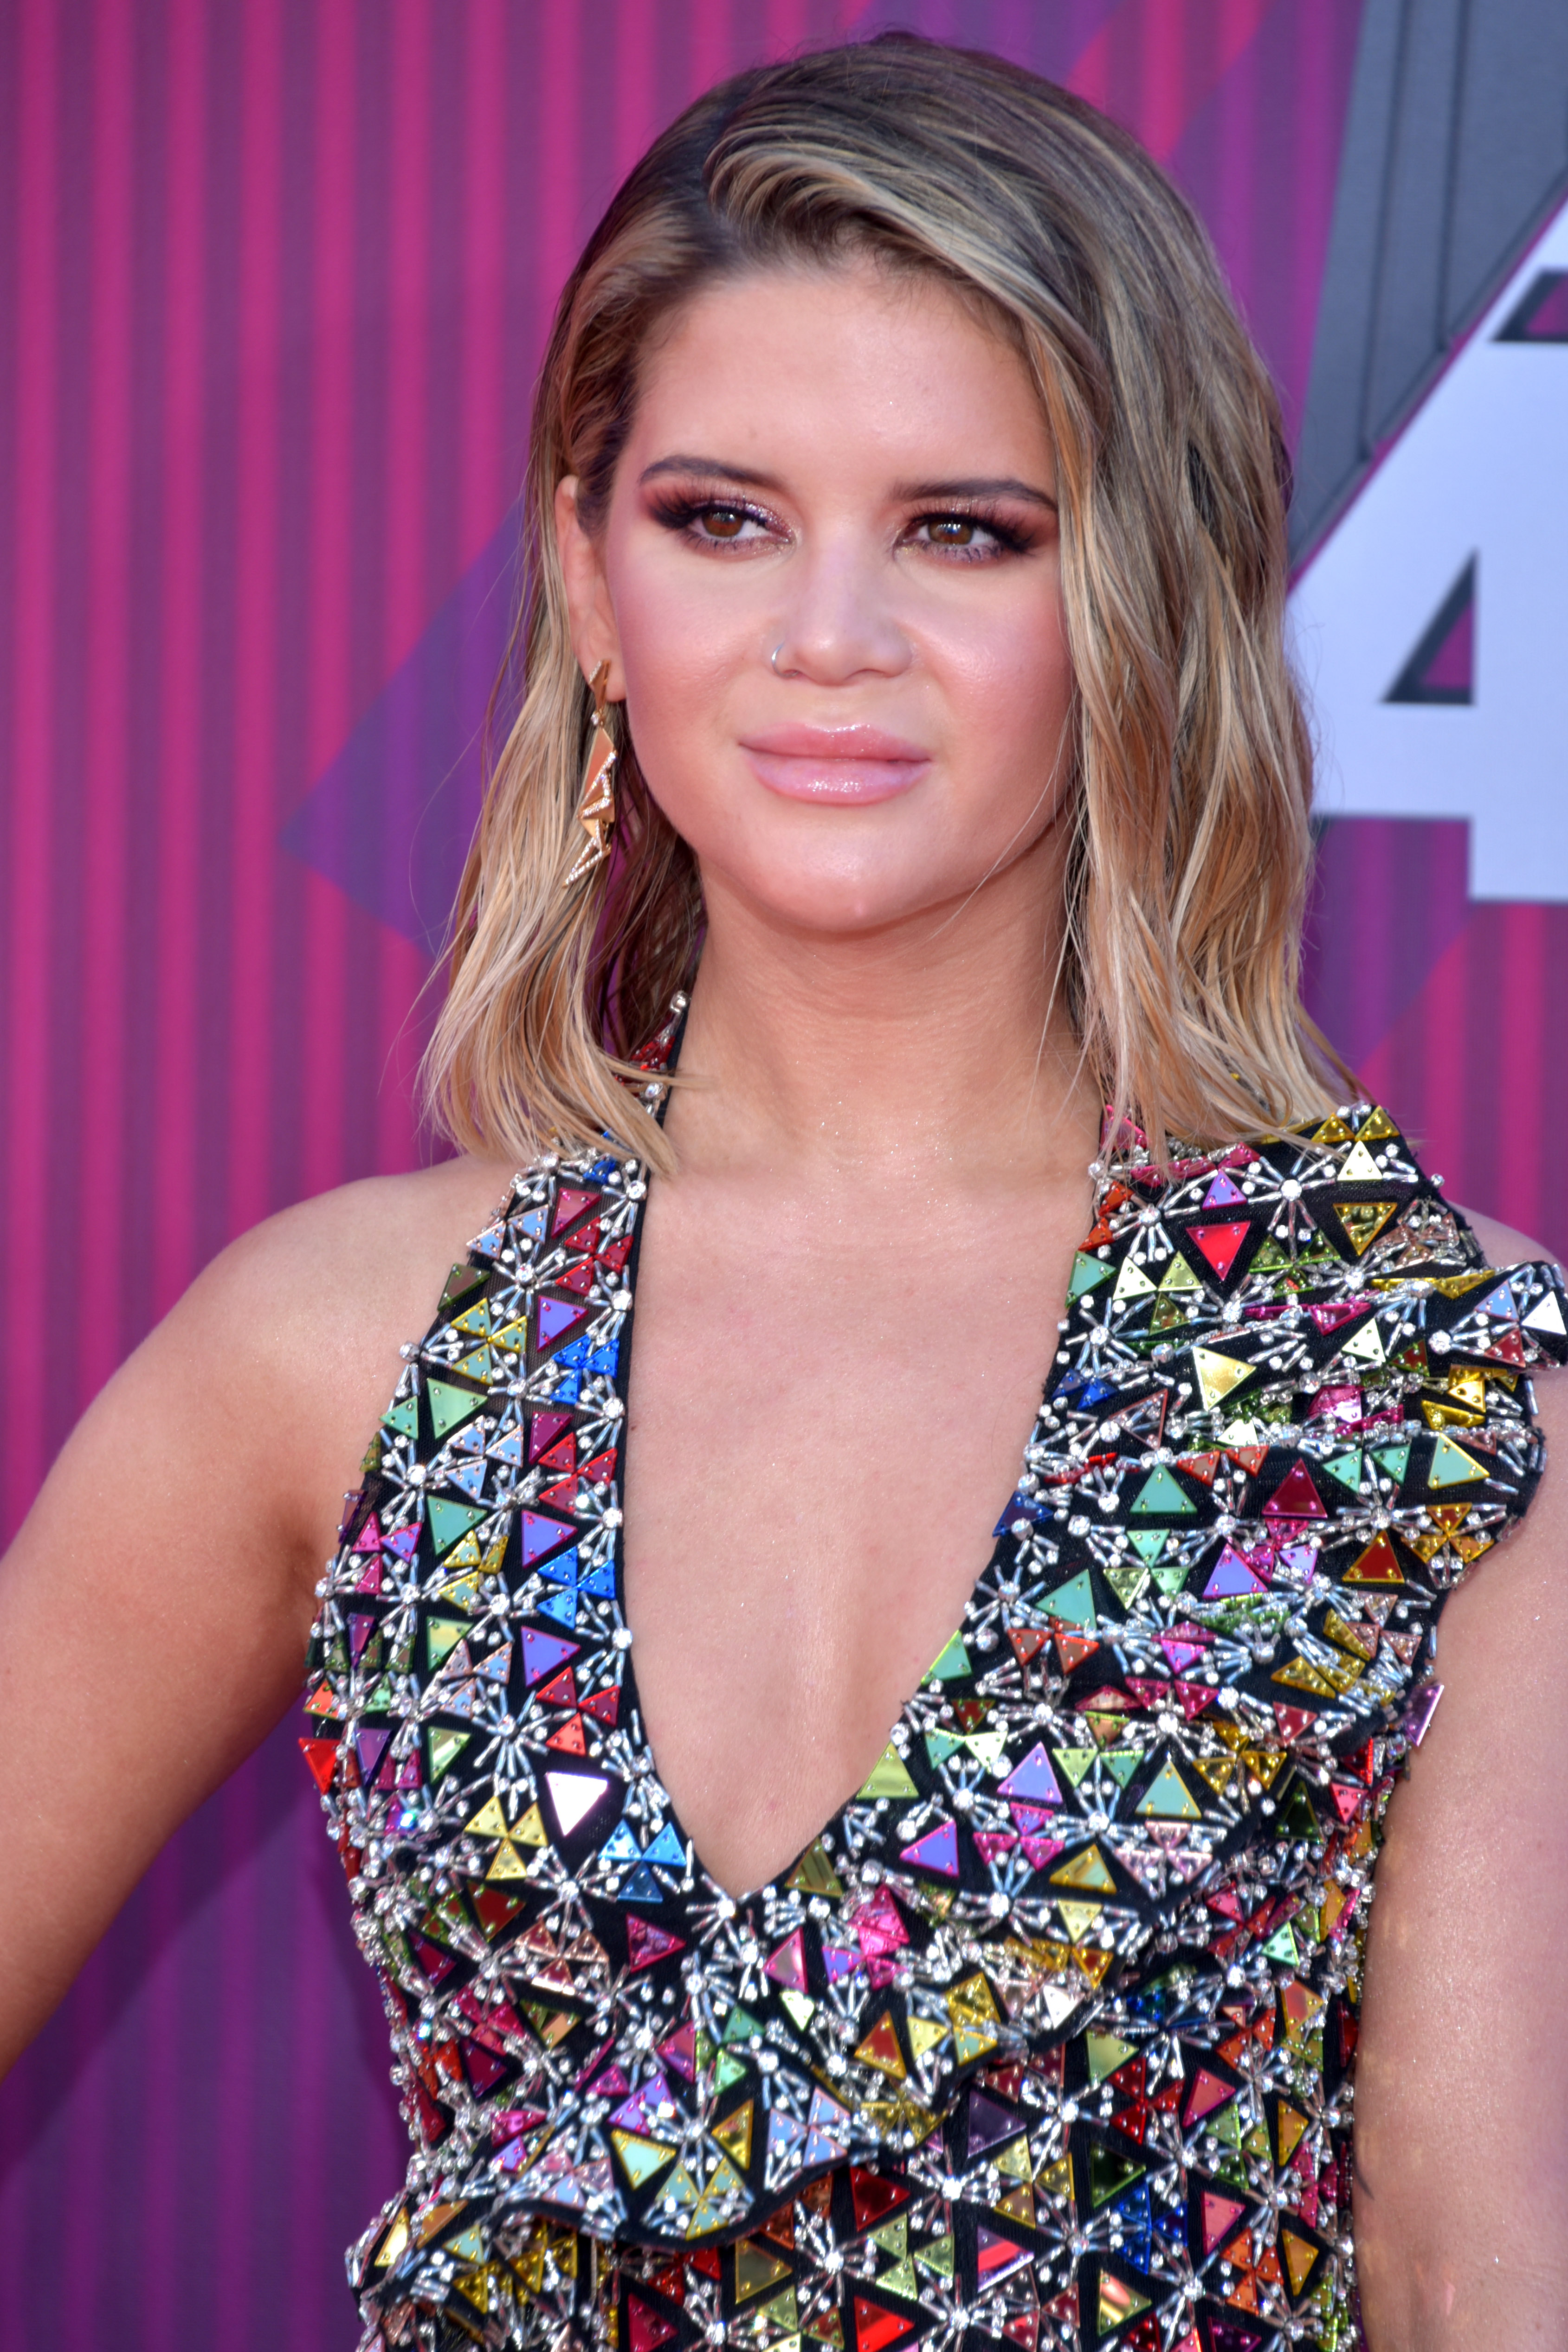 Maren Morris, new country music